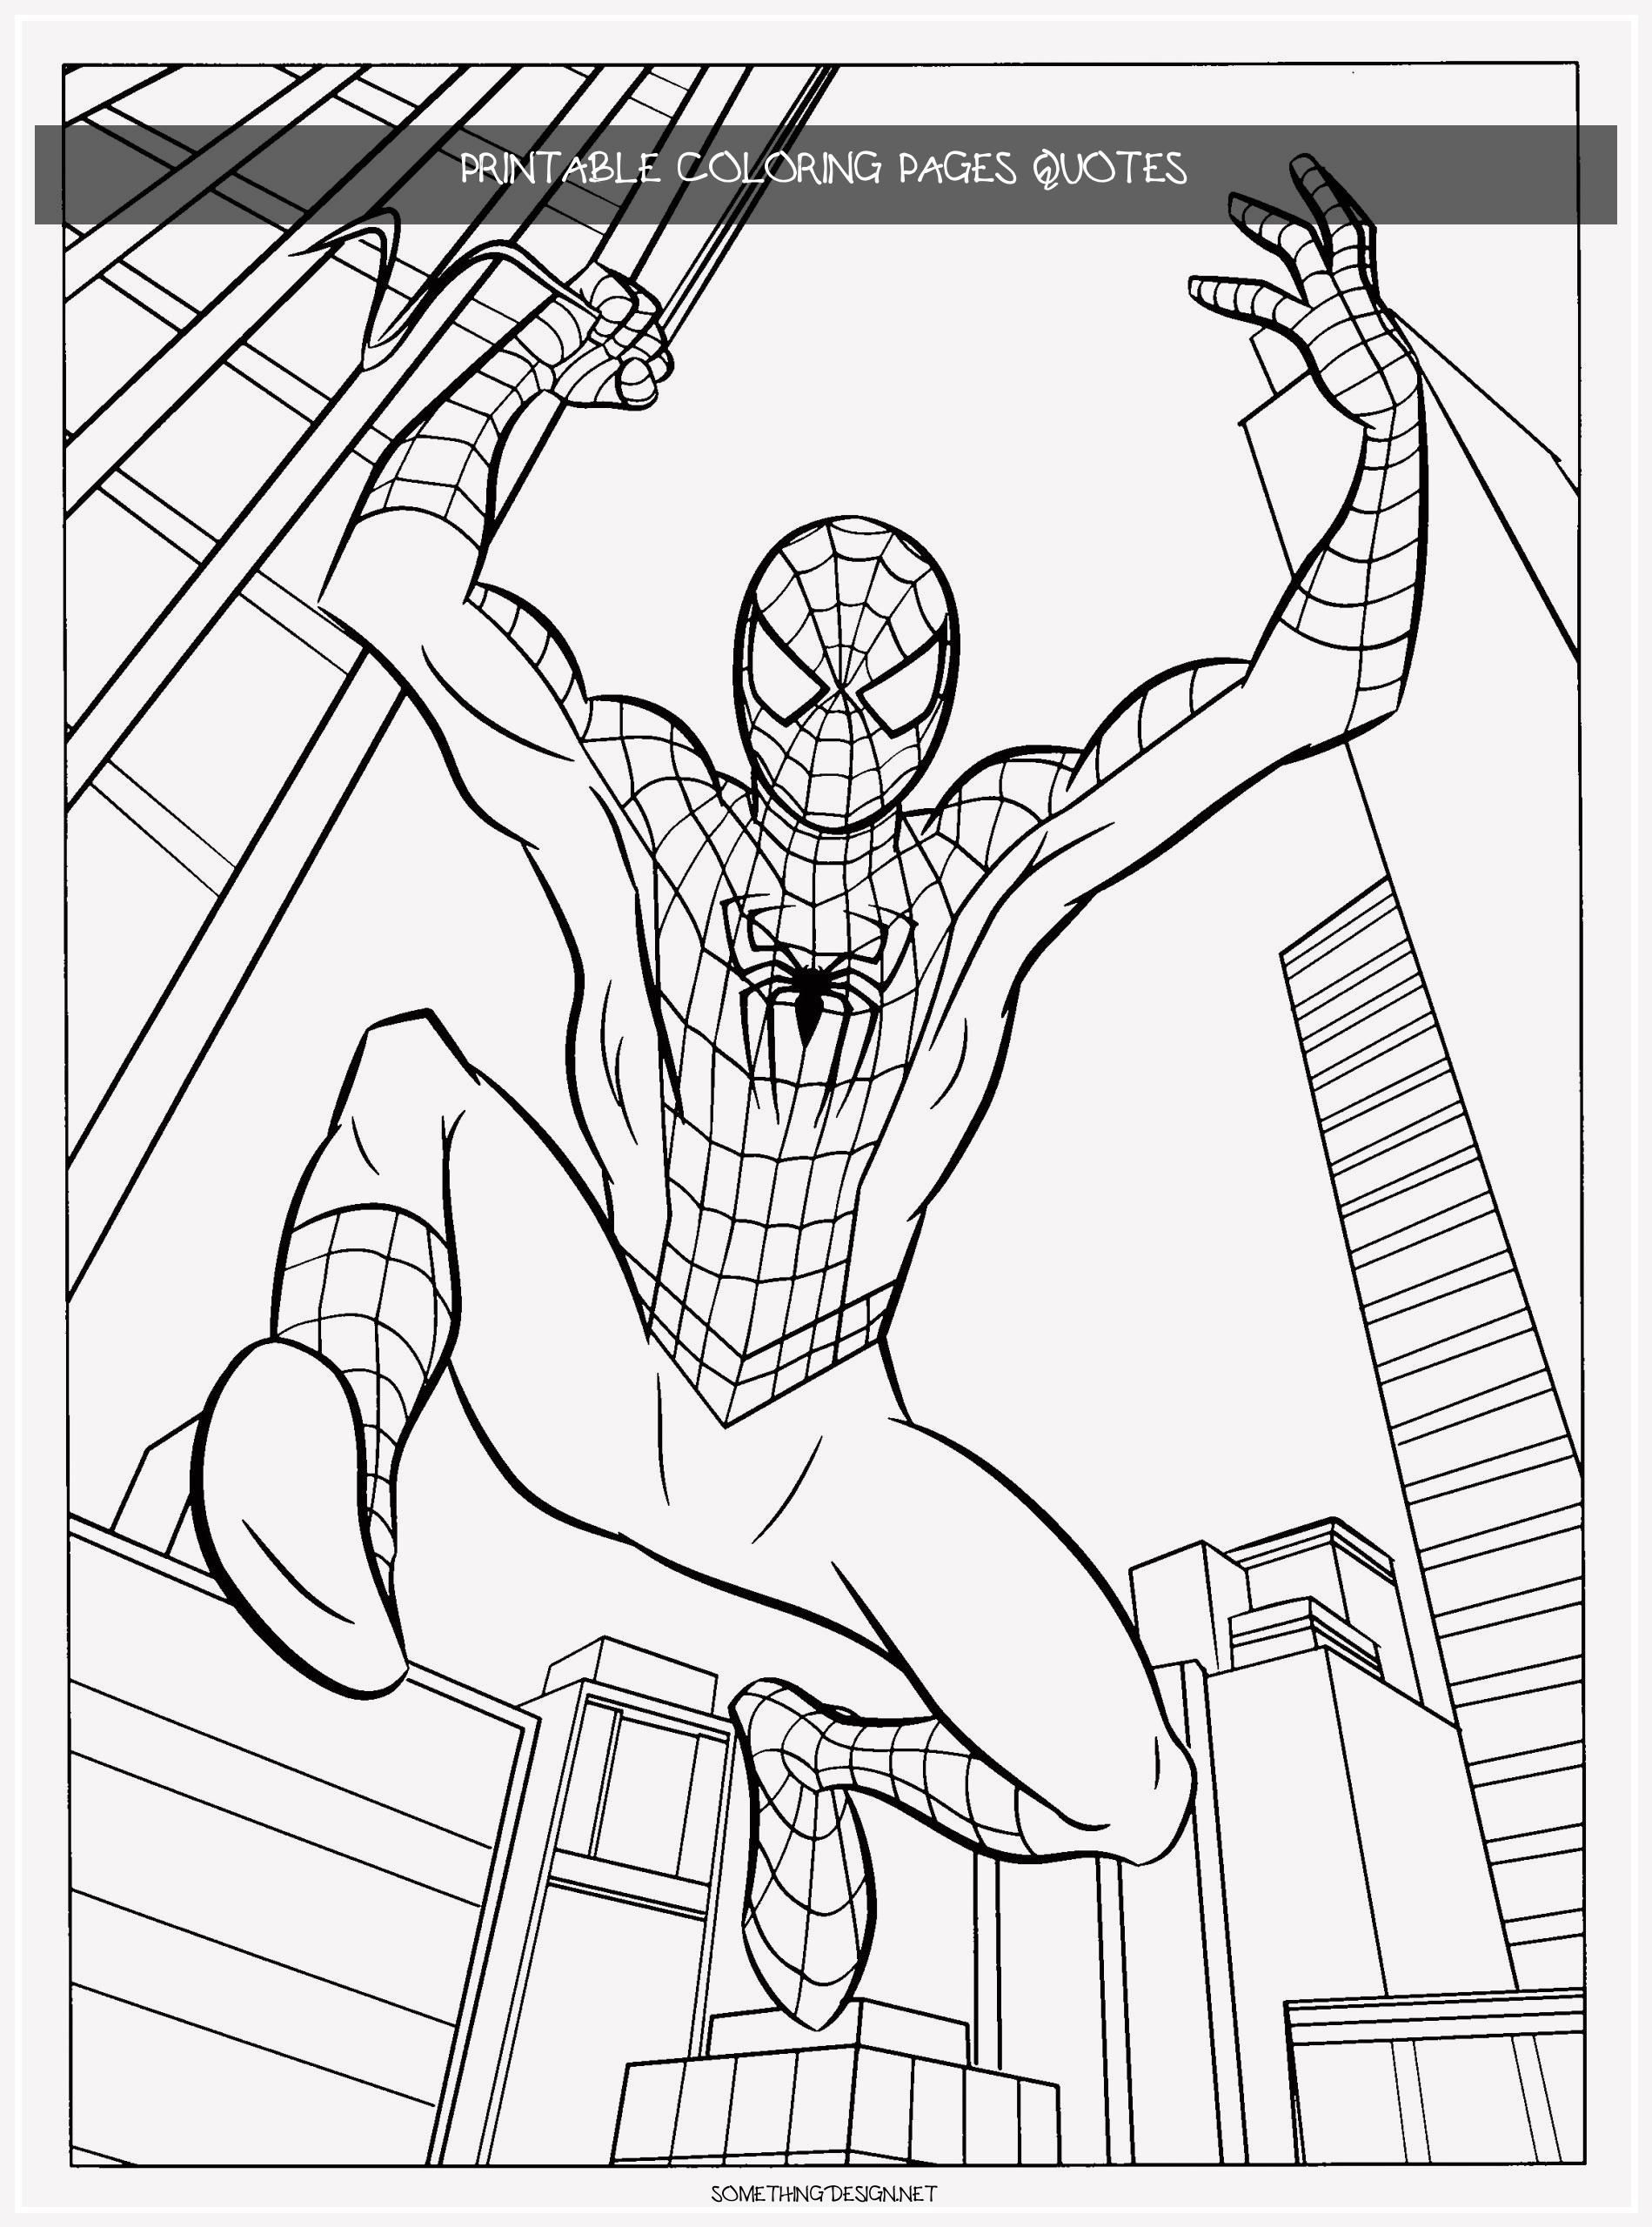 14 Printable Coloring Pages Quotes Superhero Coloring Pages Batman Coloring Pages Avengers Coloring Pages